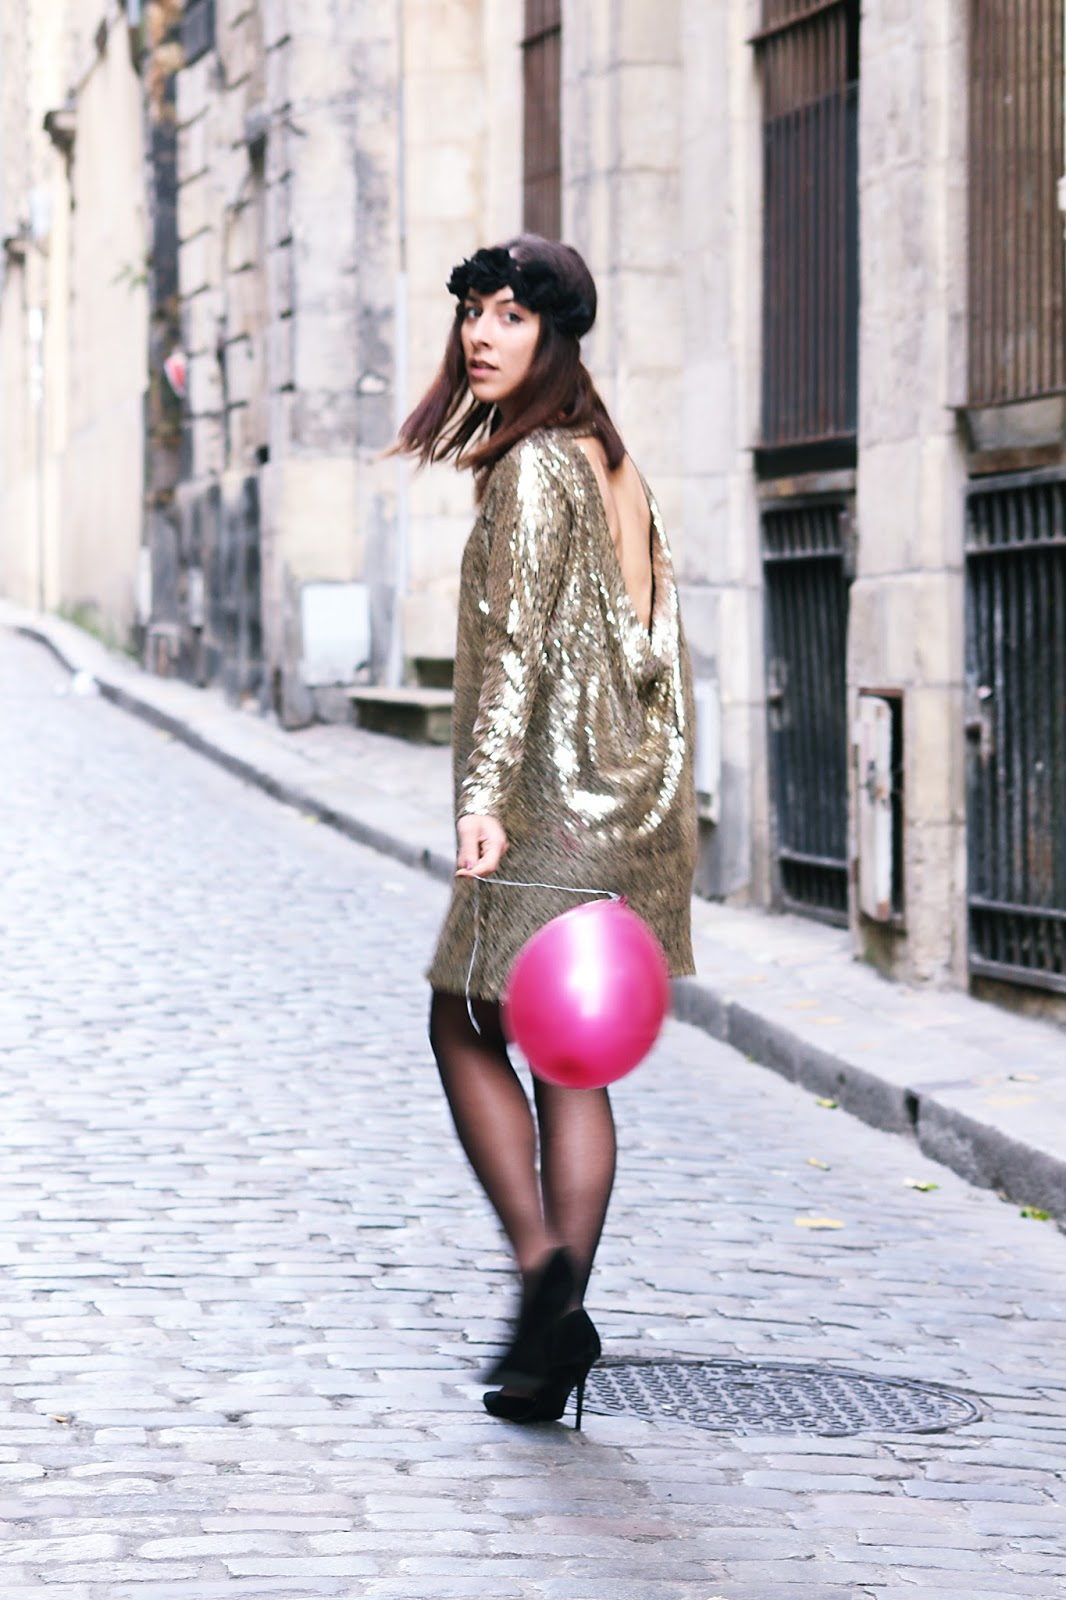 L'article à paillettes pour le New Year's Eve de Boohoo..